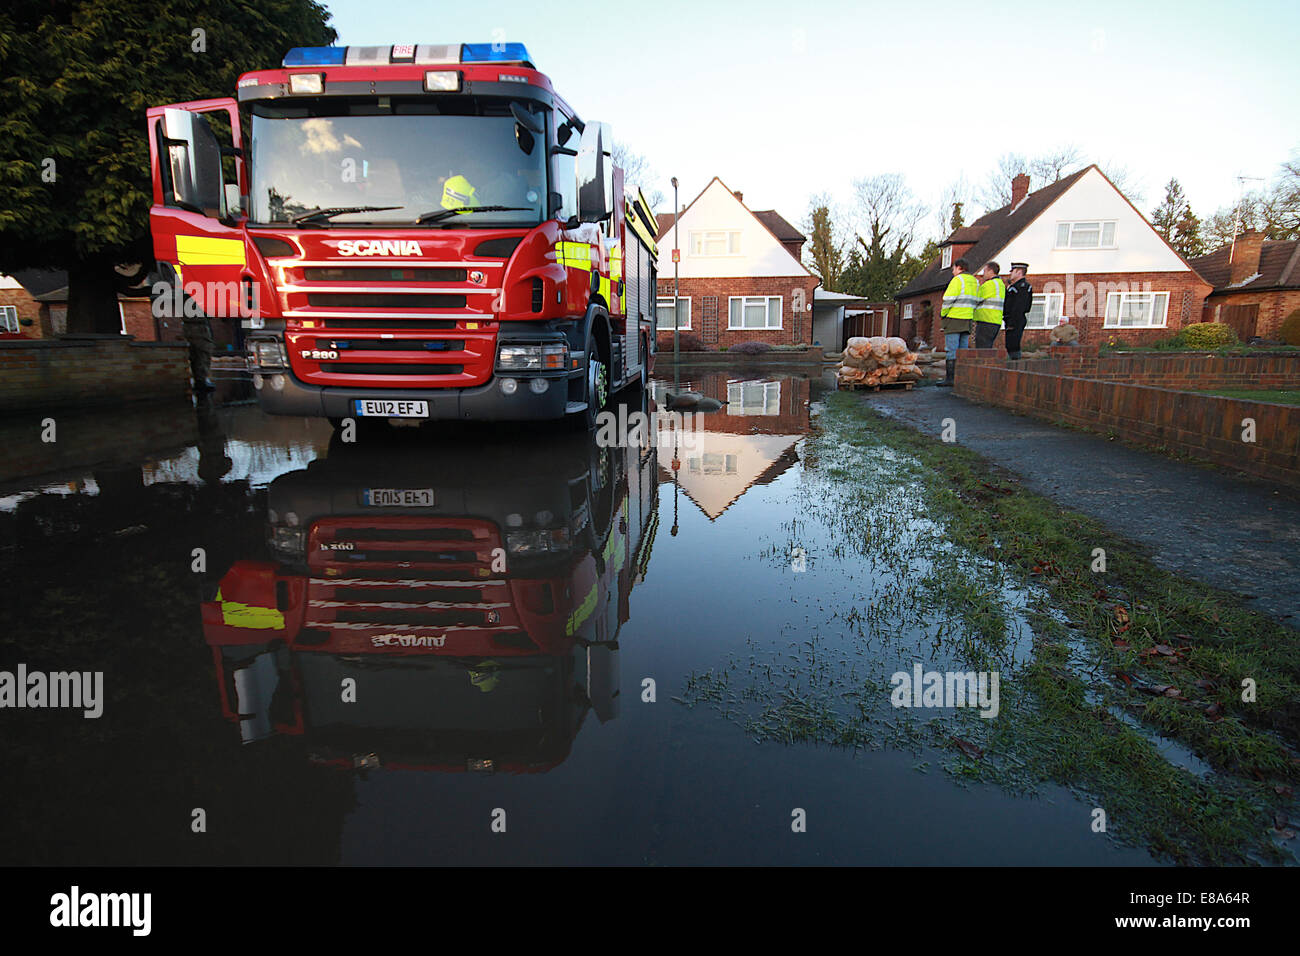 Fire and Rescue in Chertsey pumping water out. - Stock Image